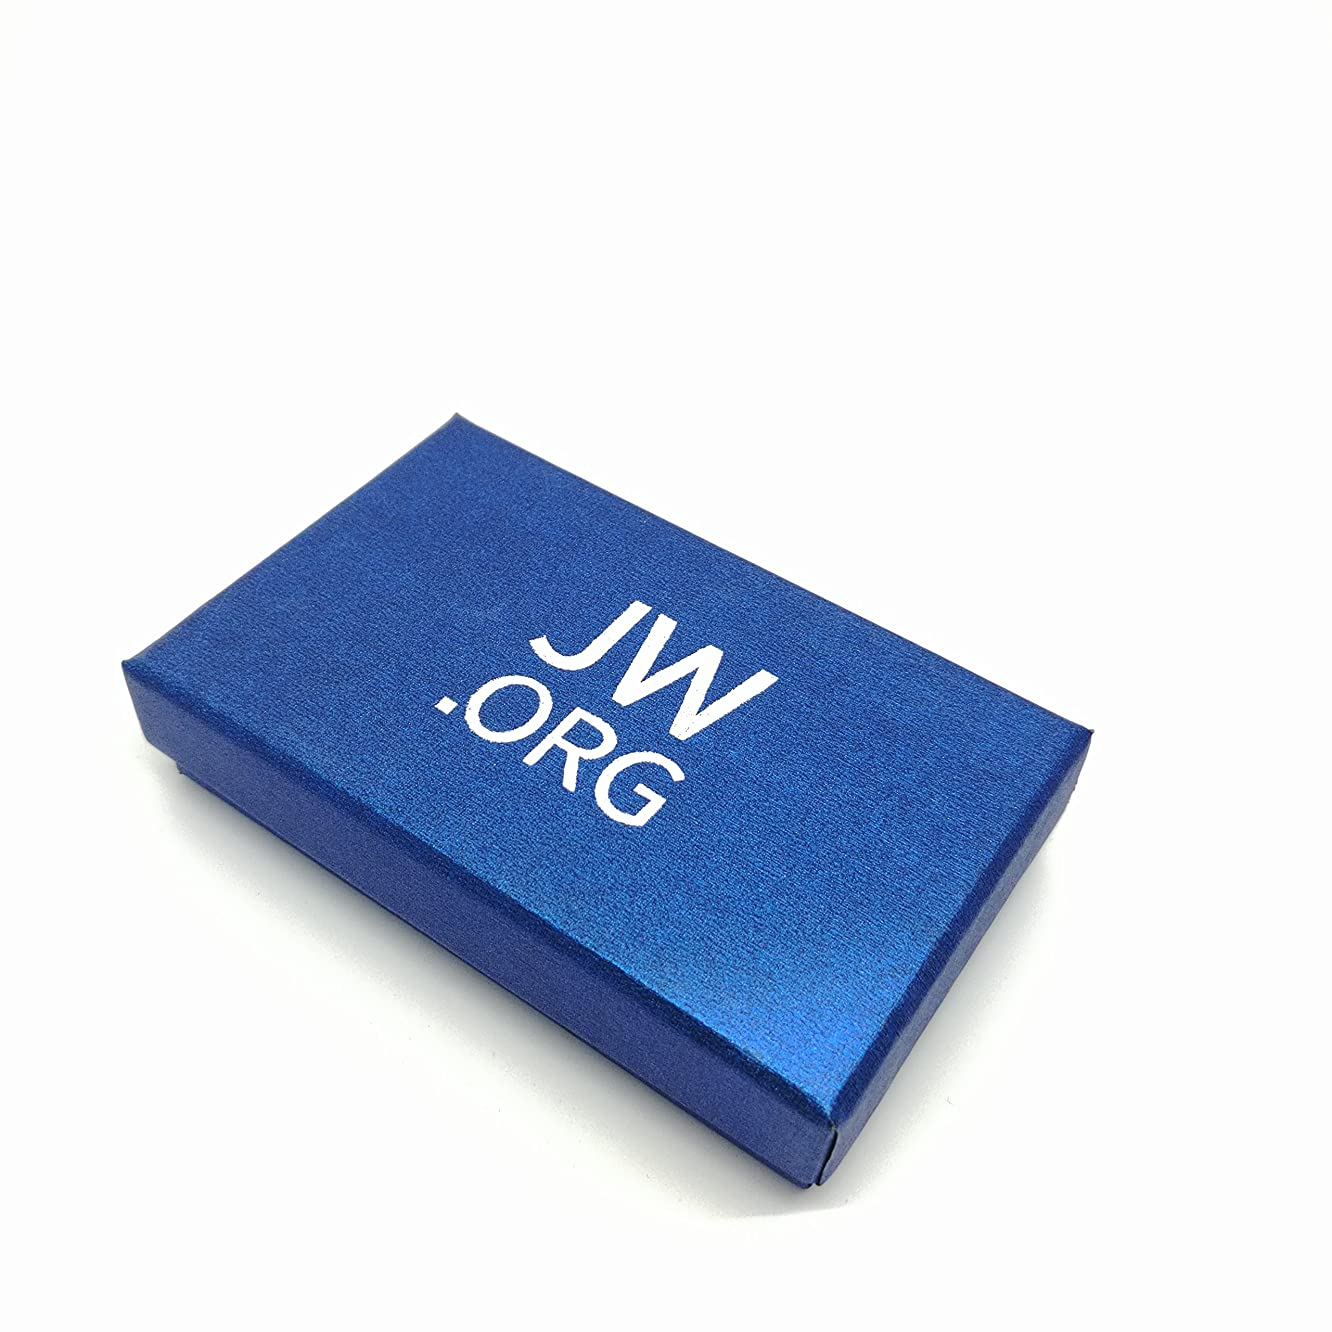 Round Jw.org Silver Color Necktie Clip and Lapel Pin Gift Set-Blue + Silver